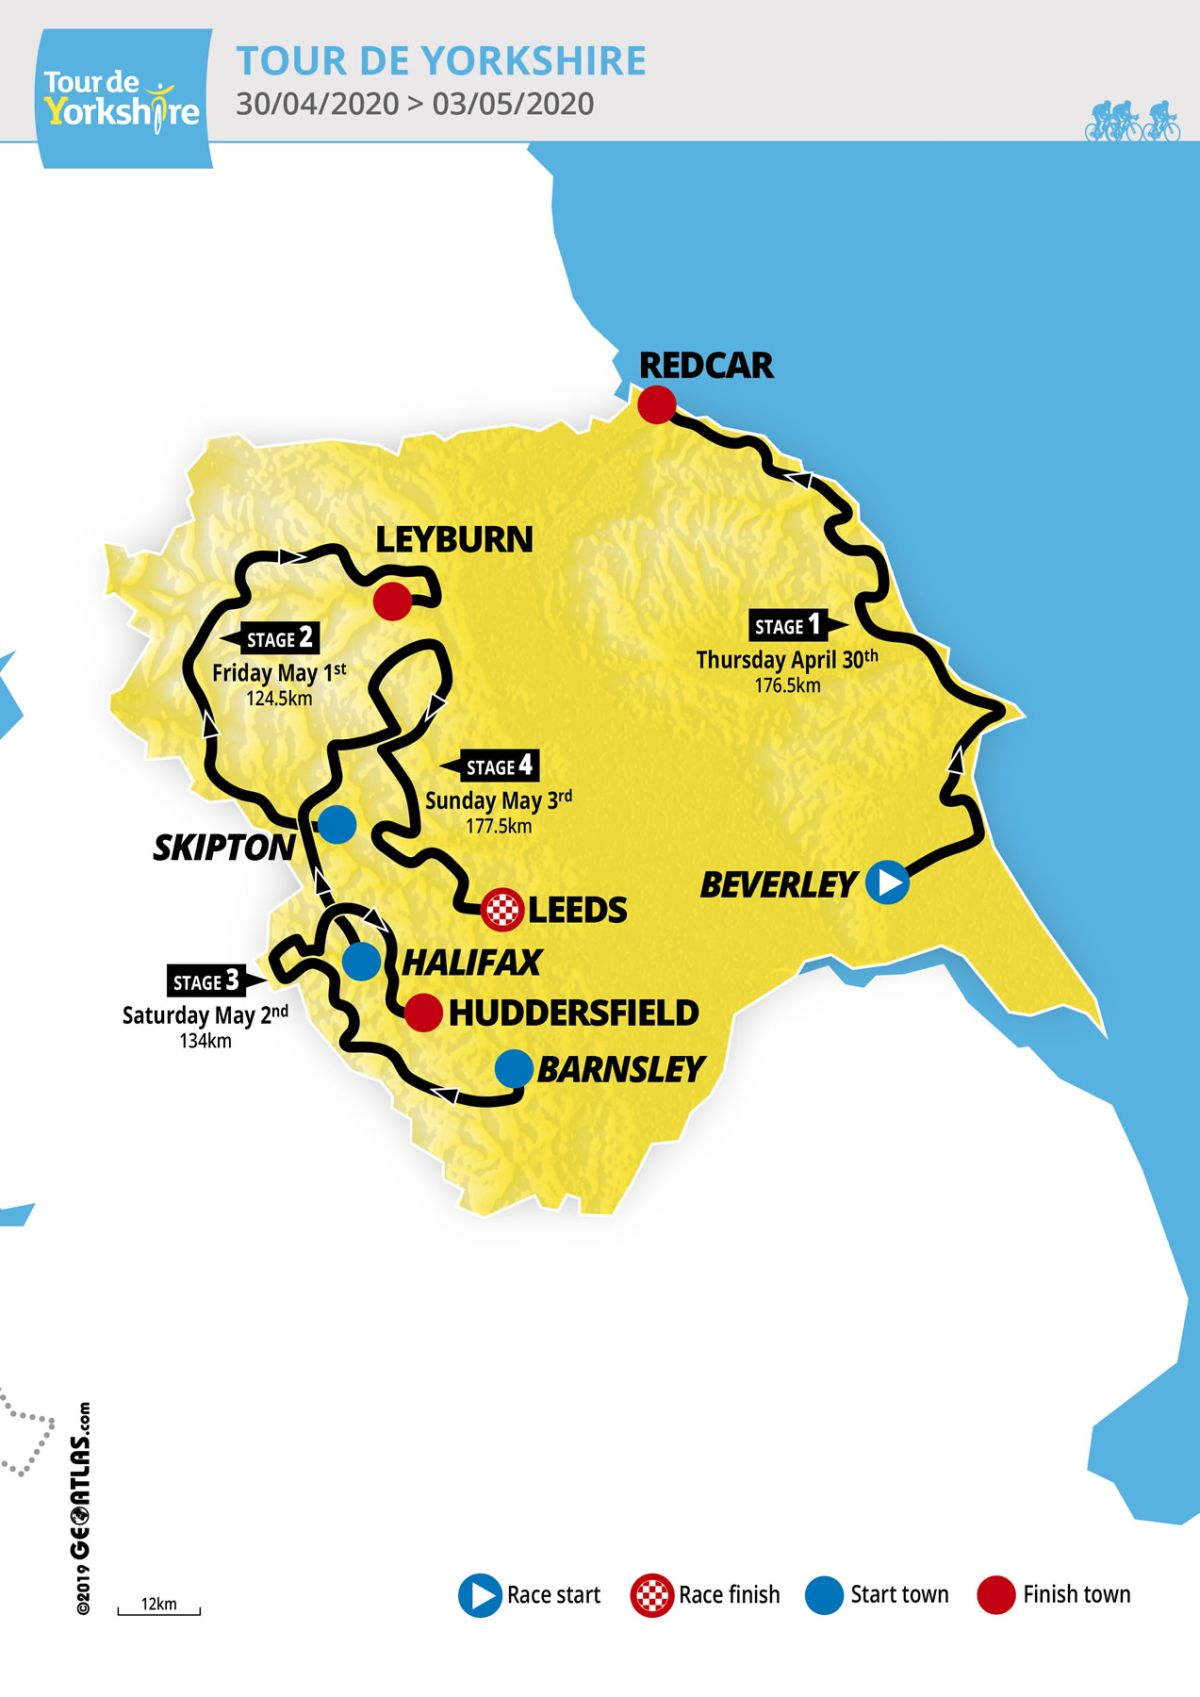 Tour de Yorkshire unveils 2020 race route